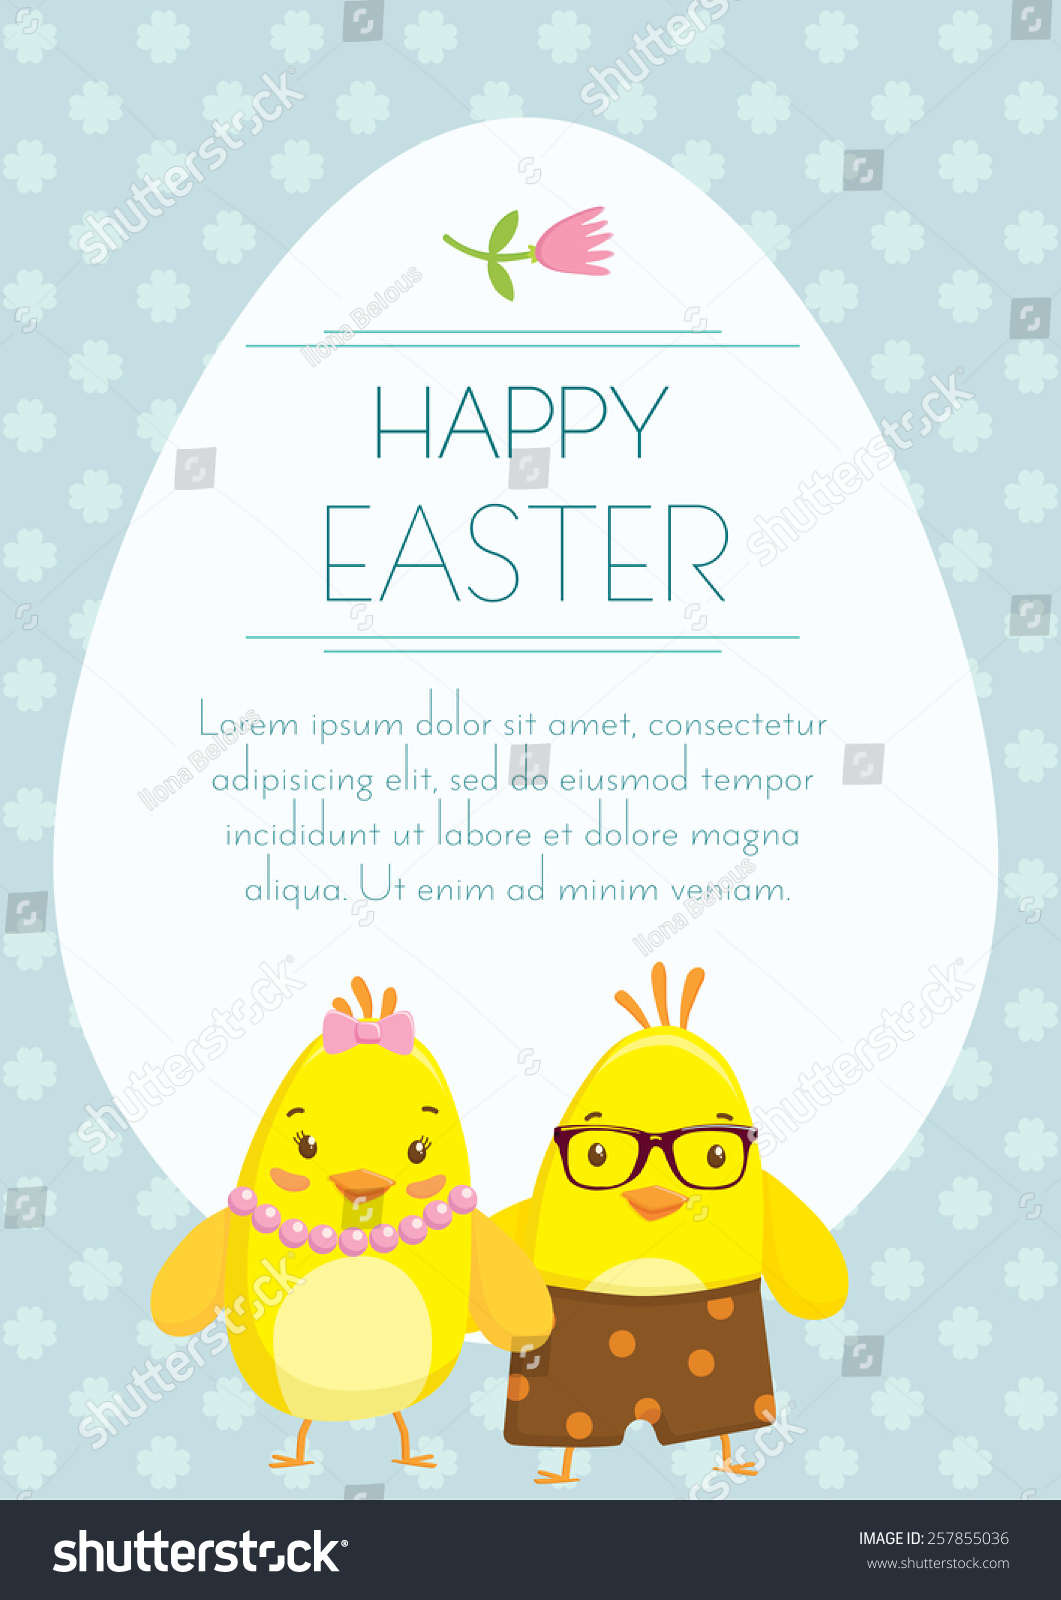 easter holiday greeting postcard with cute little boy and a girl chickens cartoons free space - Holiday Cartoons Free